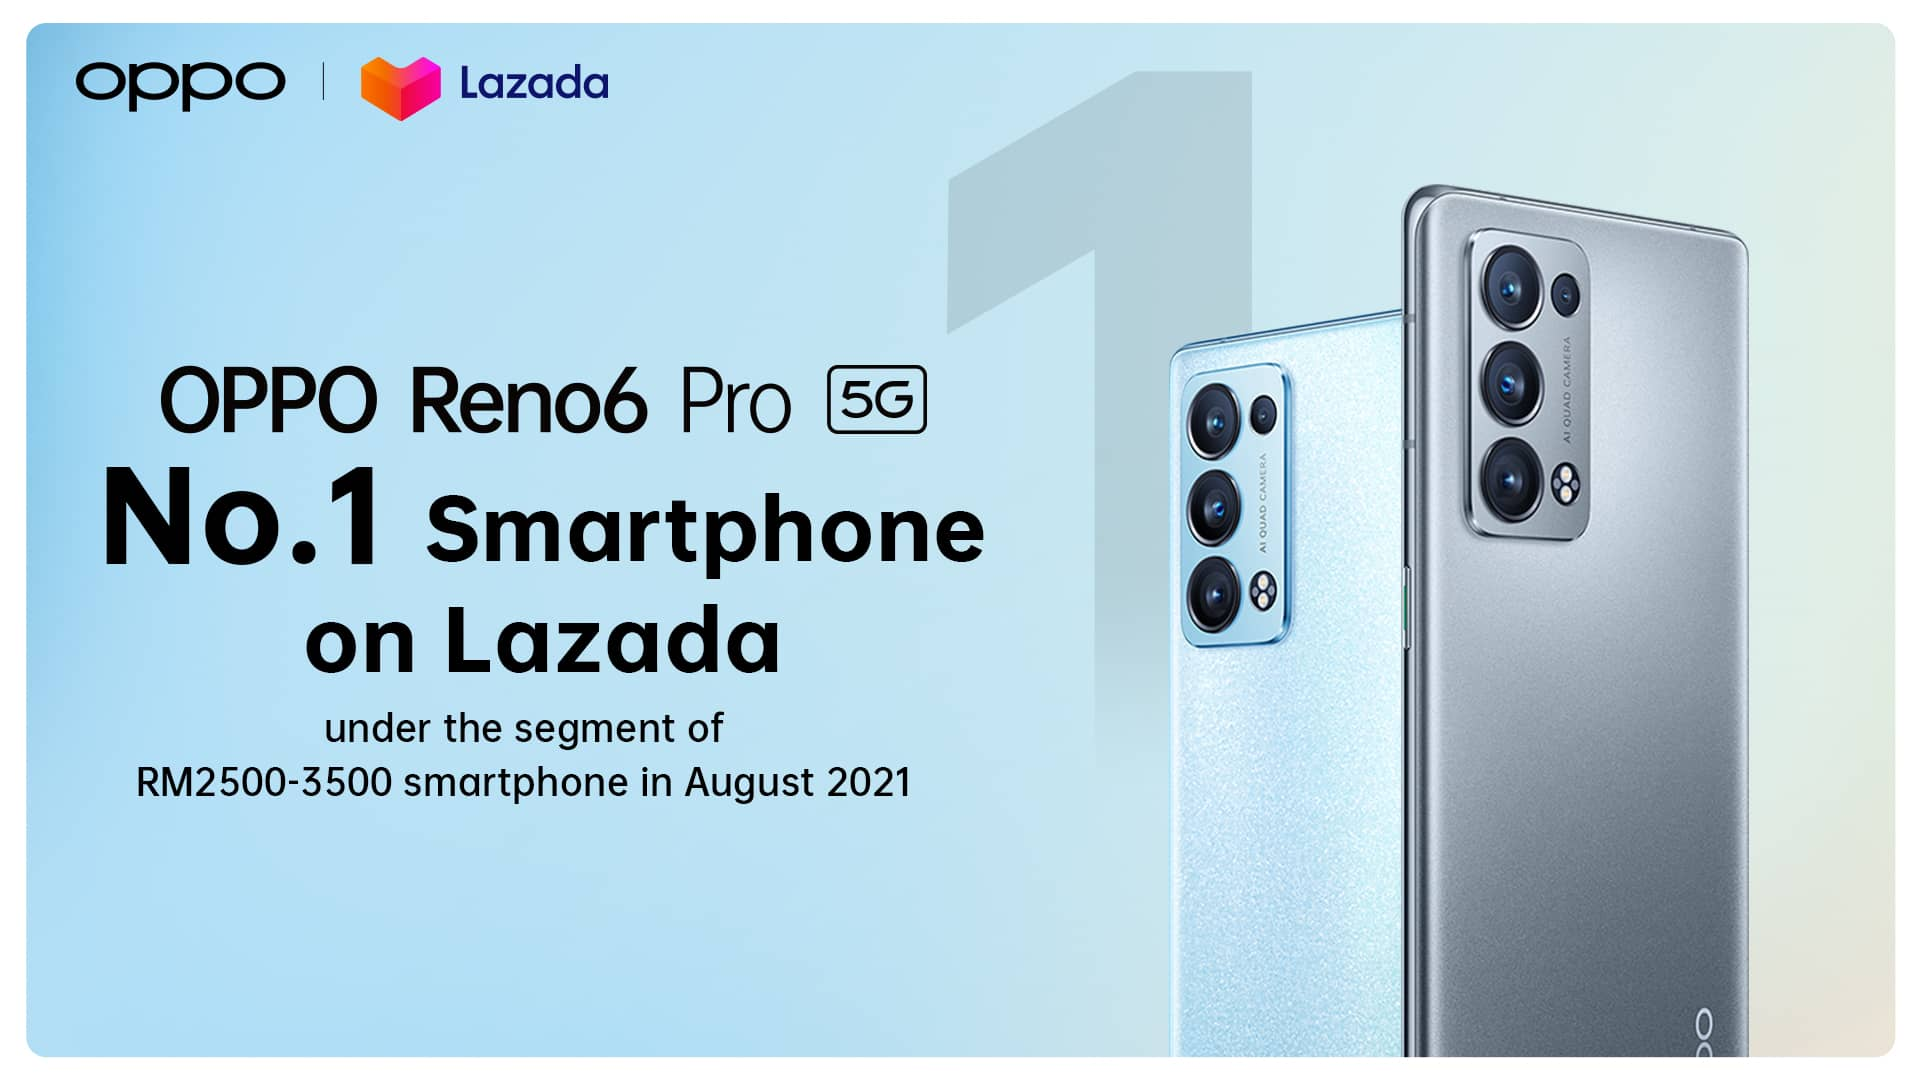 OPPO Reno6 Pro is Lazada's Top Smartphone in its Category for August 2021